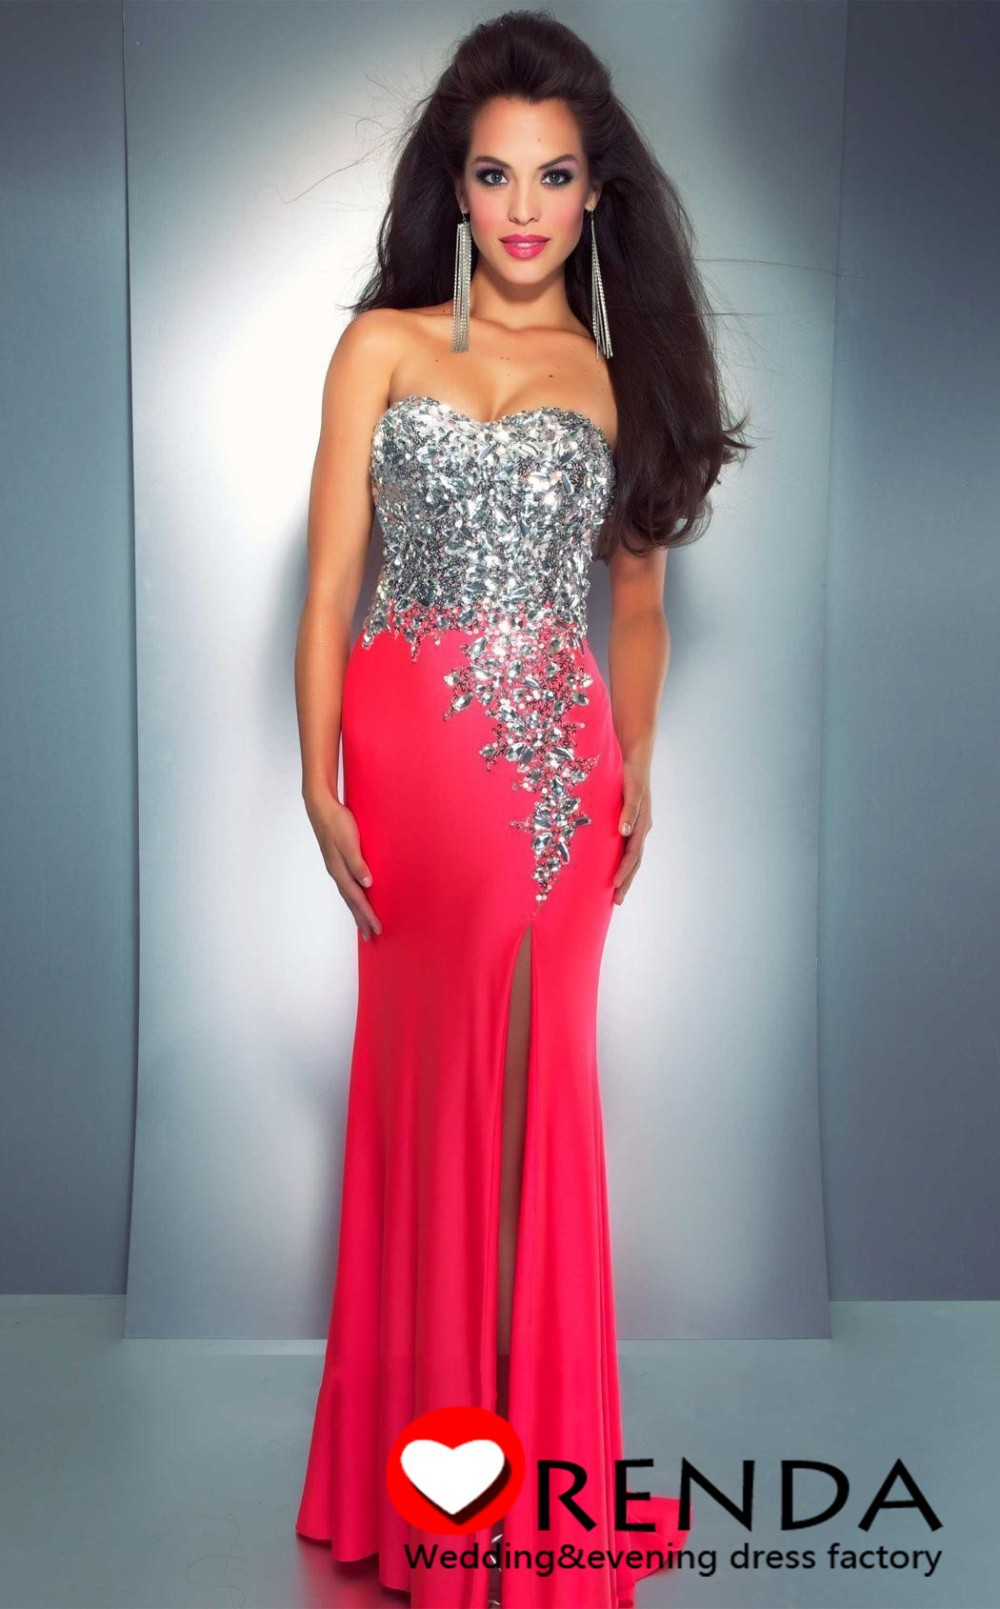 Charmming Hot Selling Sweetheart Hot Pink Sequins Stone Bra Corset Chiffon Long Slit Prom Evening Dresses 2014 New Fashion-in Prom Dresses from Apparel & Accessories on Aliexpress.com